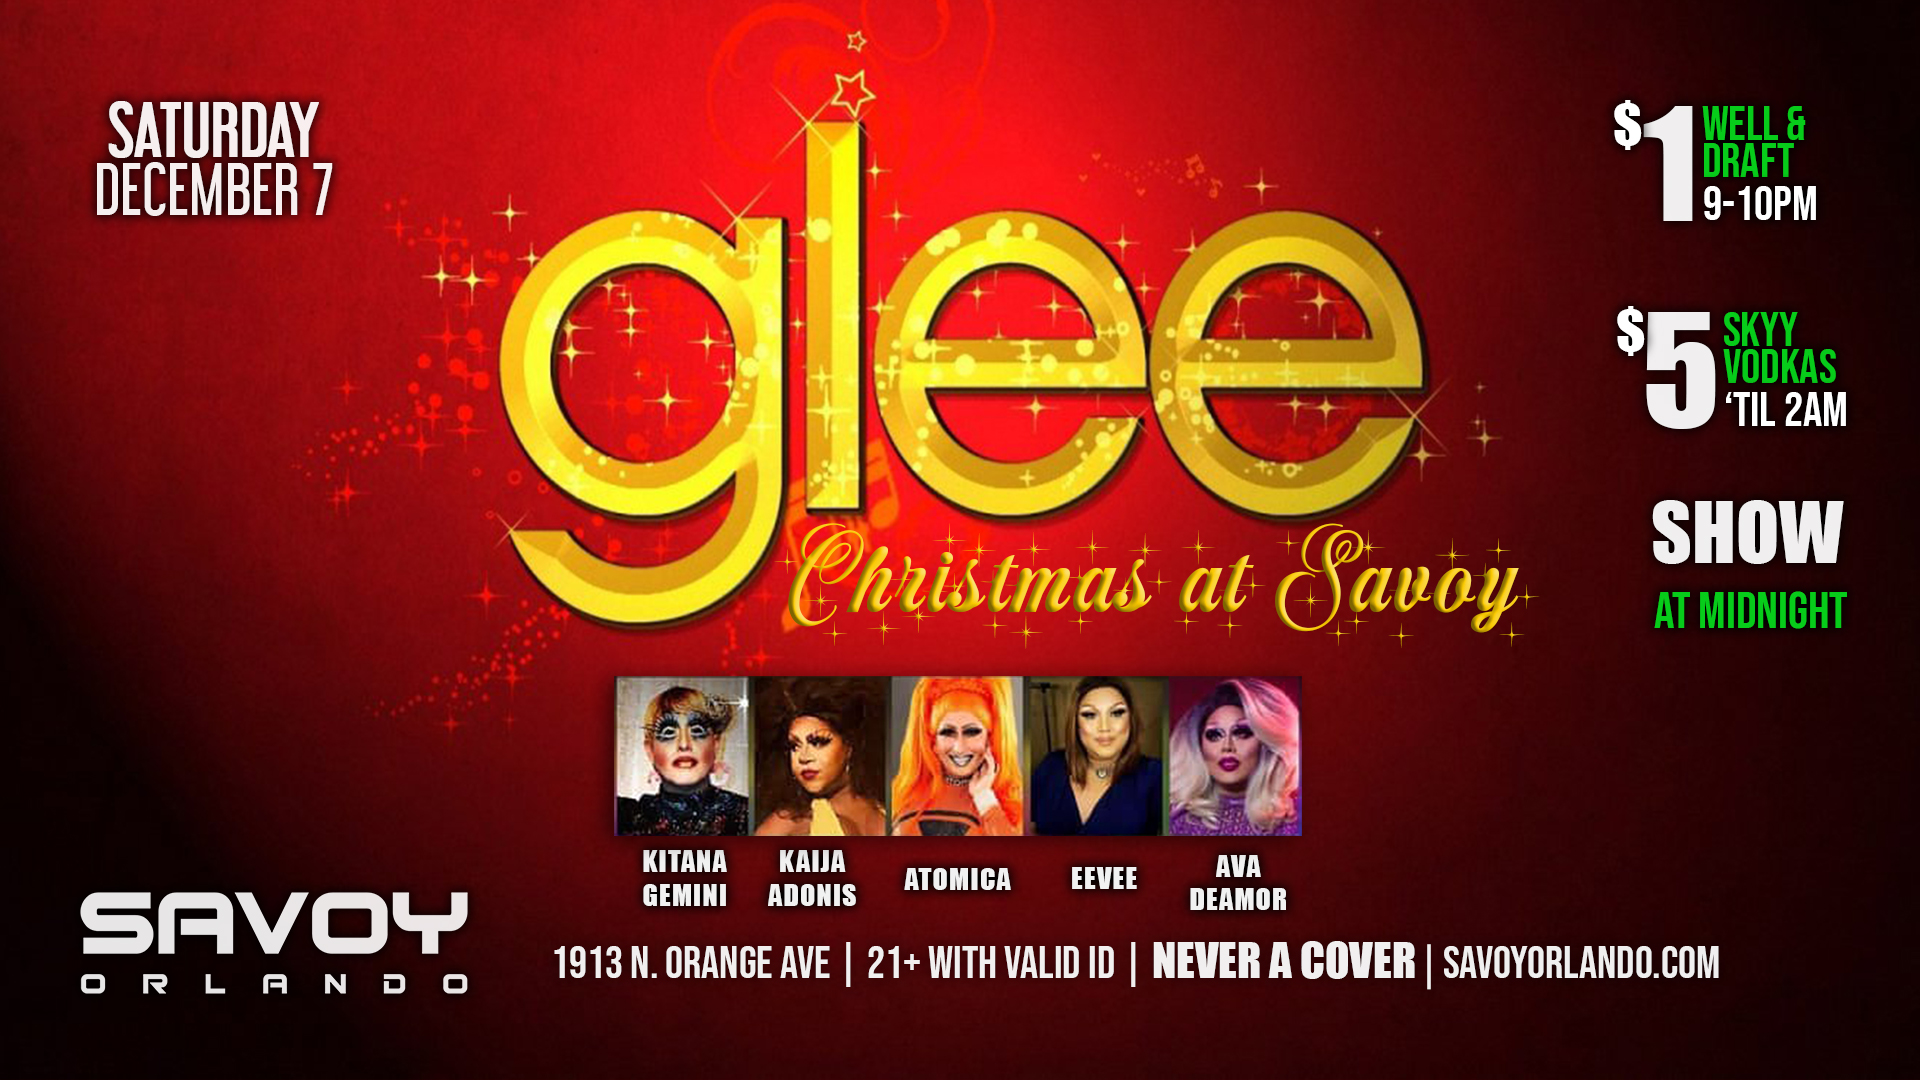 A glee christmas at savoy